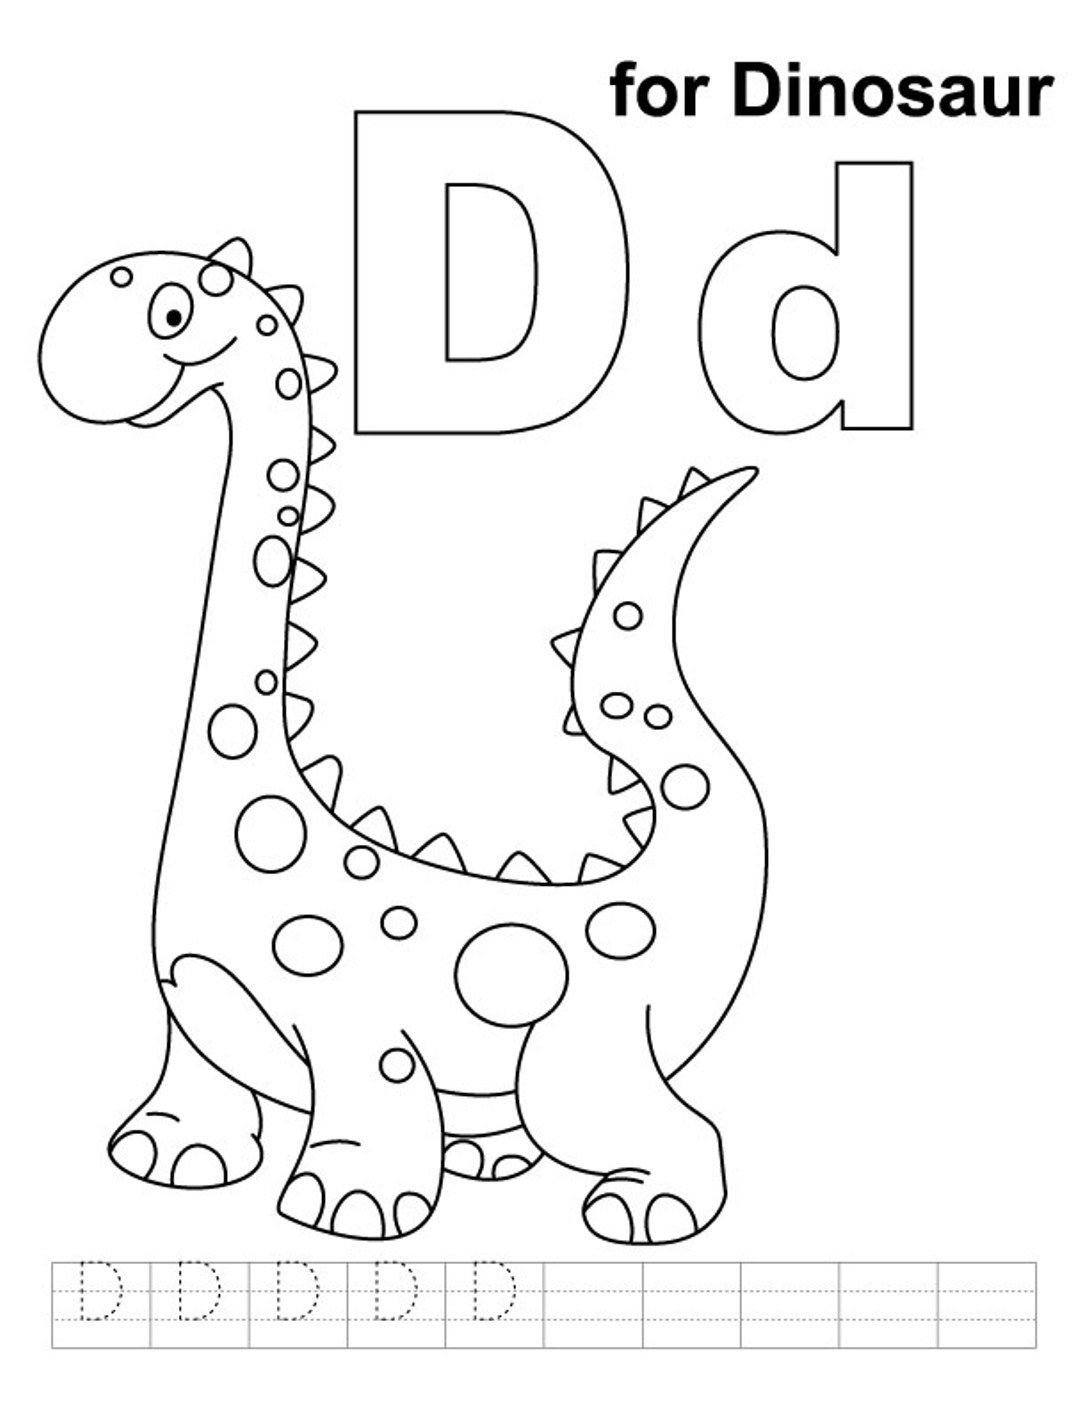 Dinosaur Worksheets for Preschoolers astonishing Free Printable Dinosaur Color by Number Image